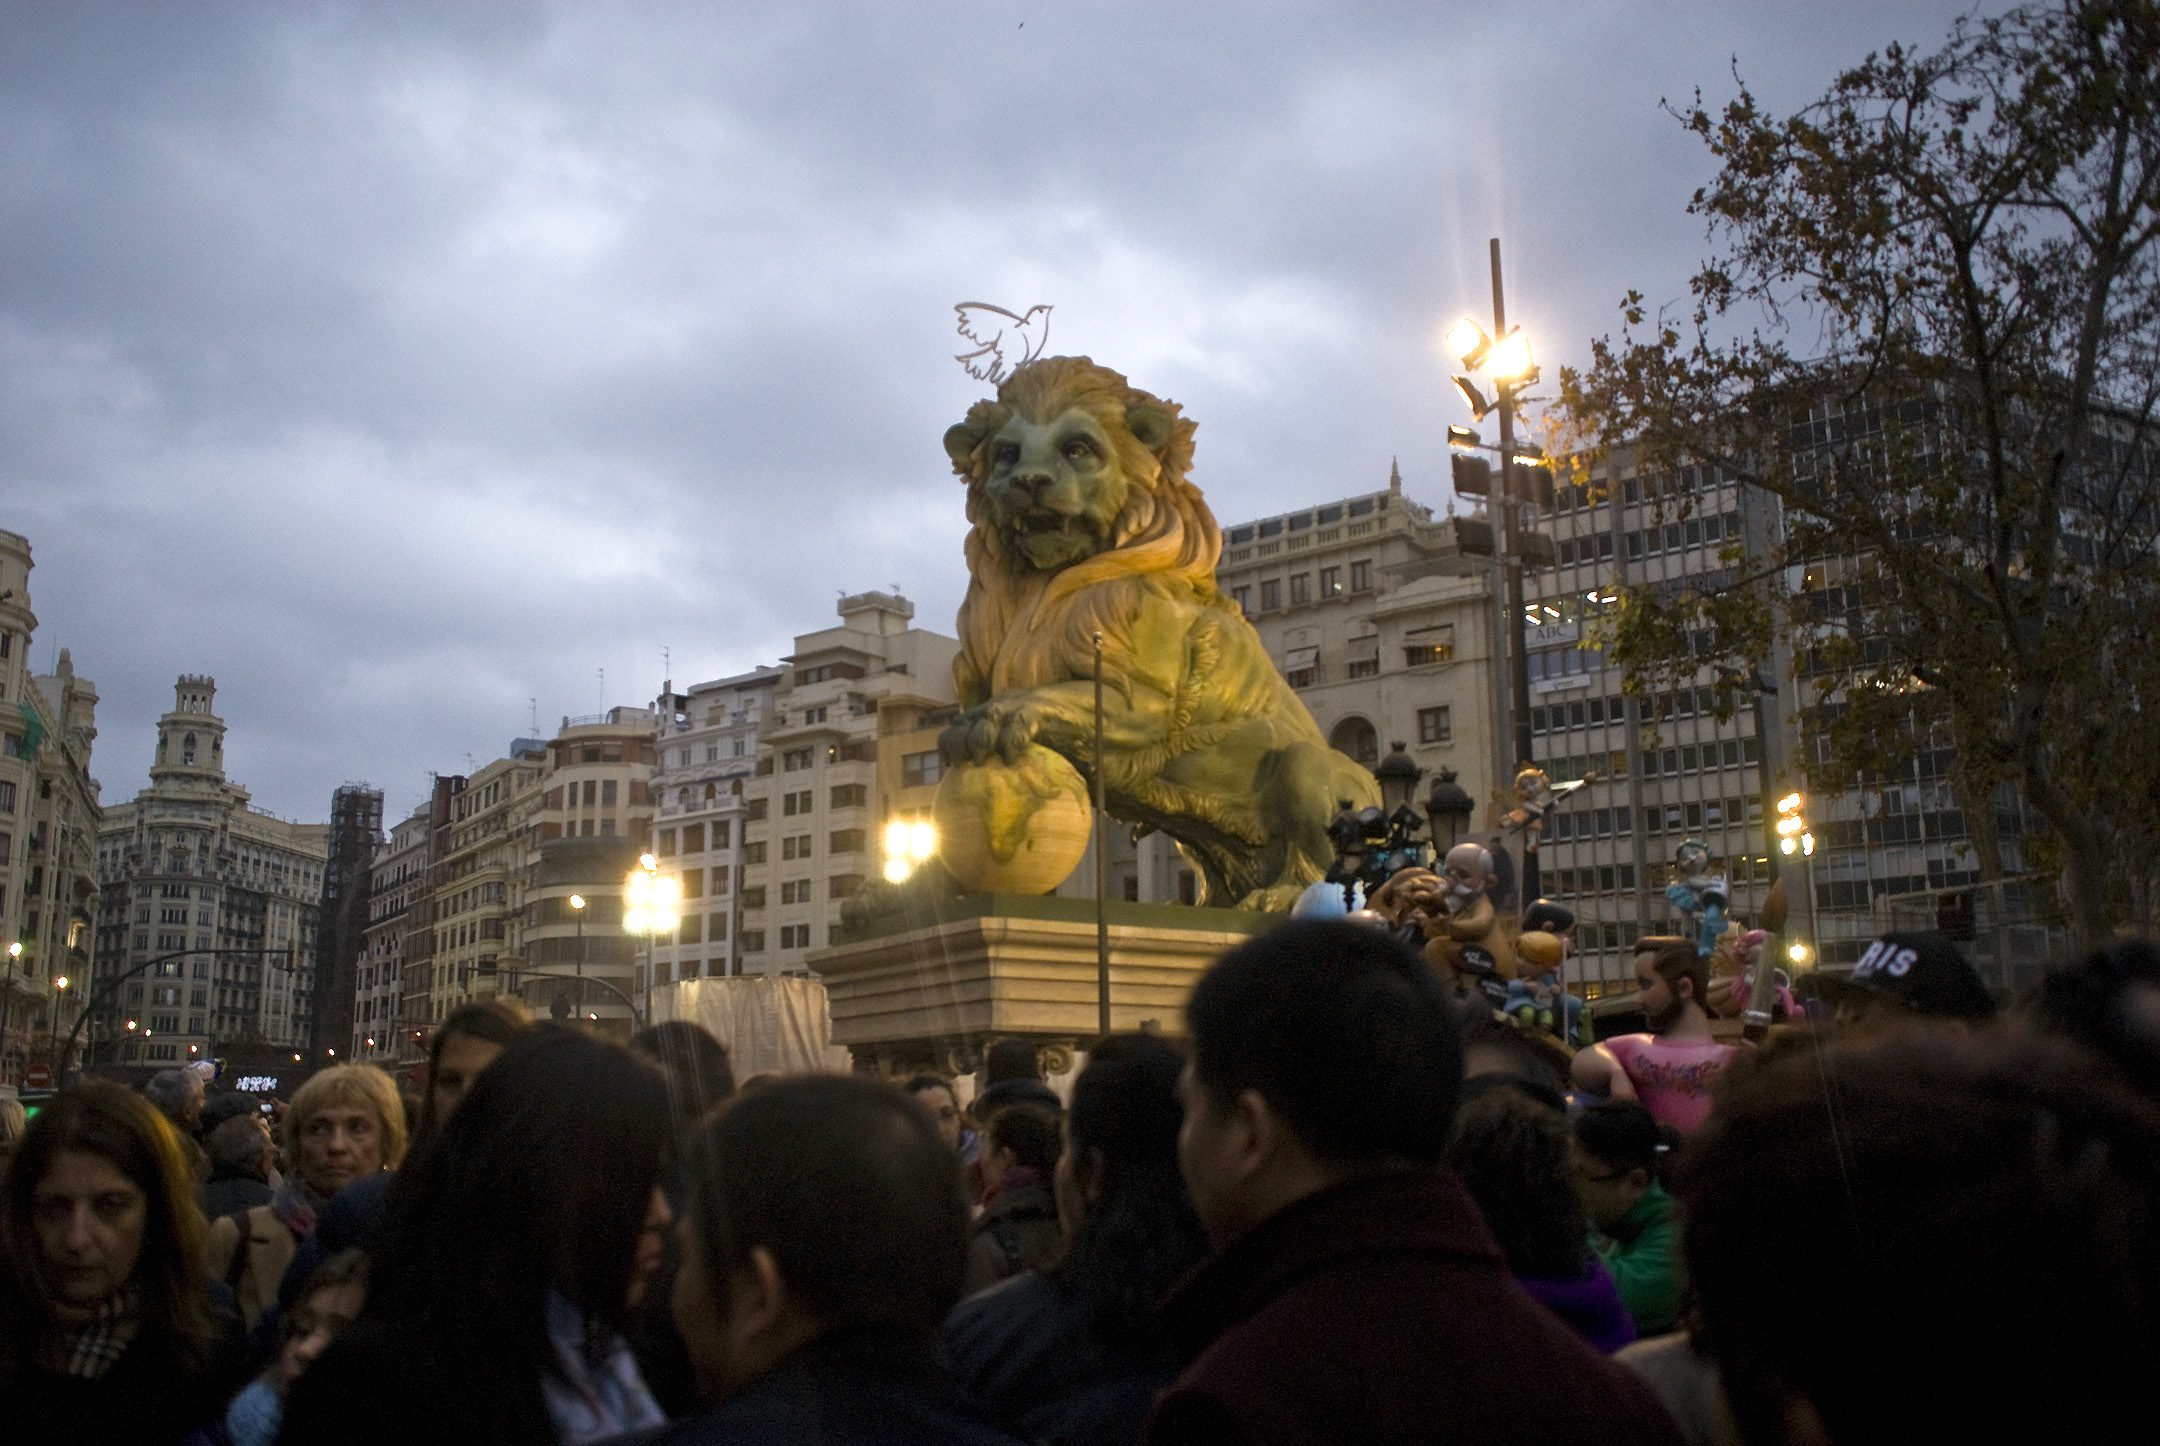 The city hall falla, located in the city's main square- also one of the biggest and most notable in the city.